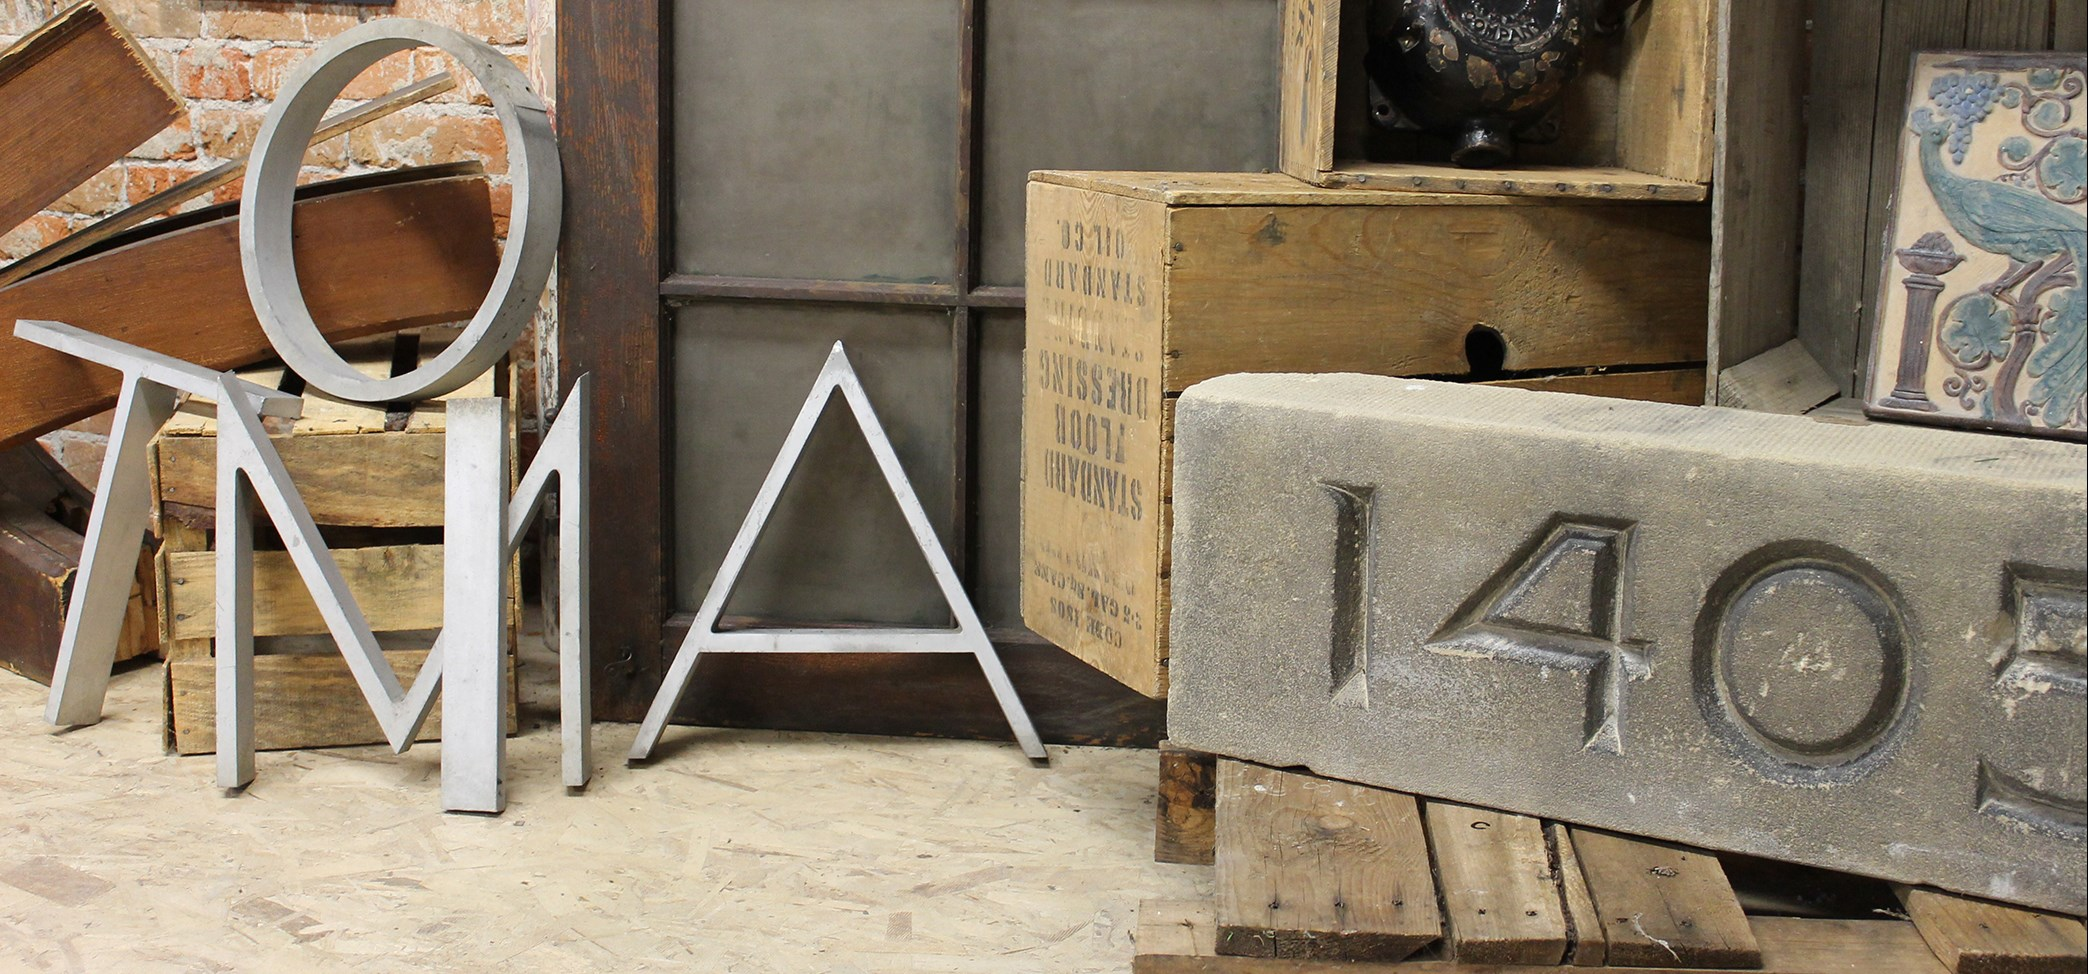 Header image of crates, bricks, and large metal letters